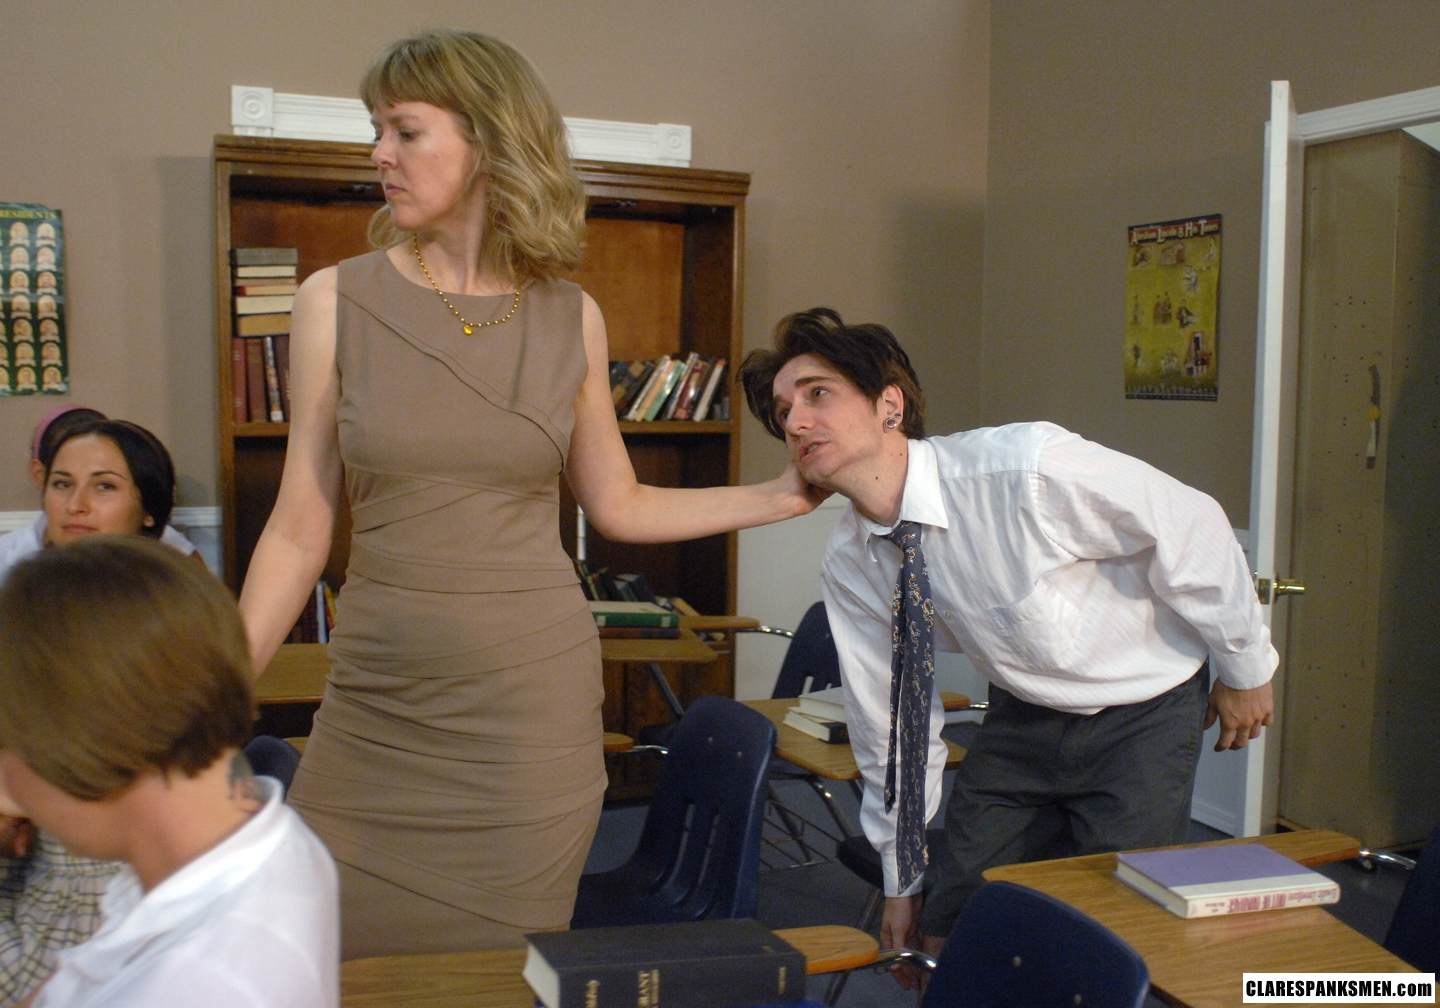 I Spanked By Teacher Group with Personal Stories,